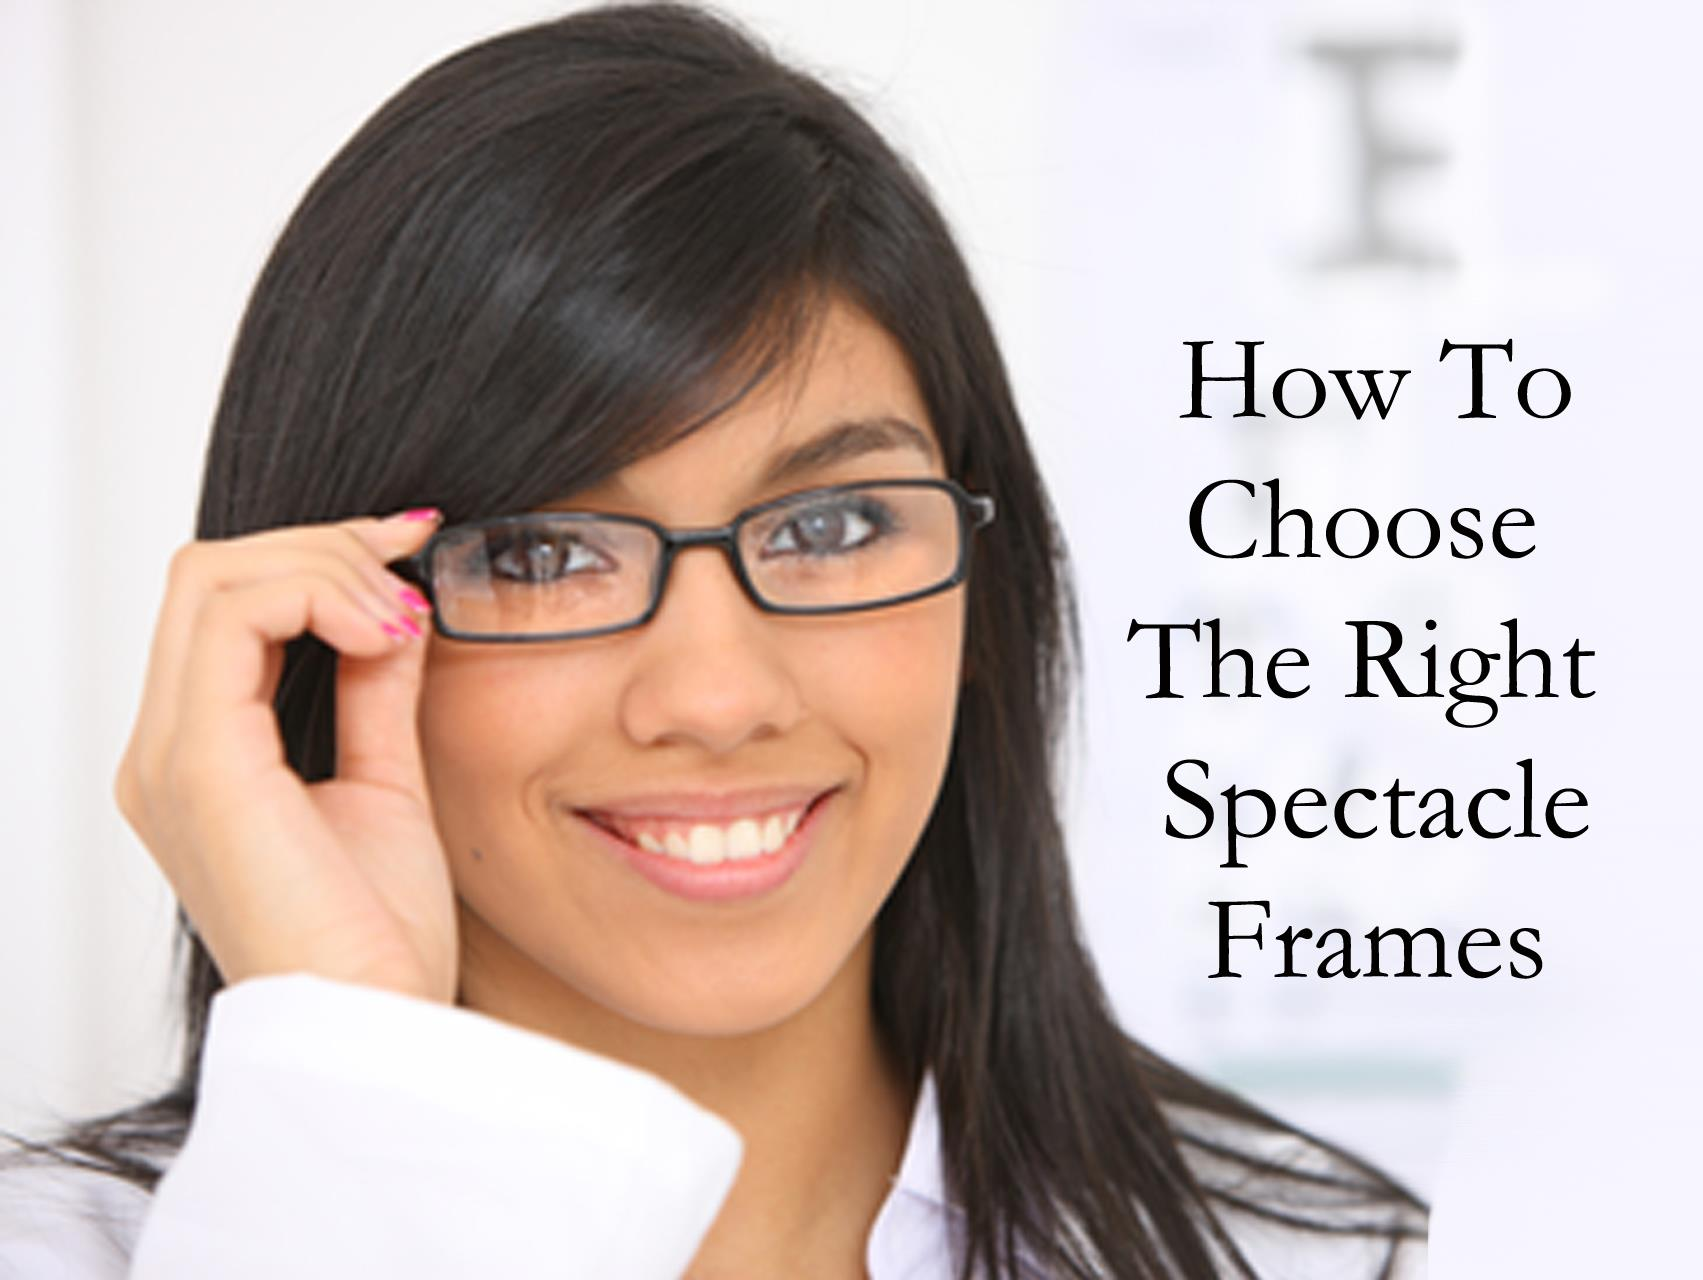 How to Choose The Right Spectacle Frames